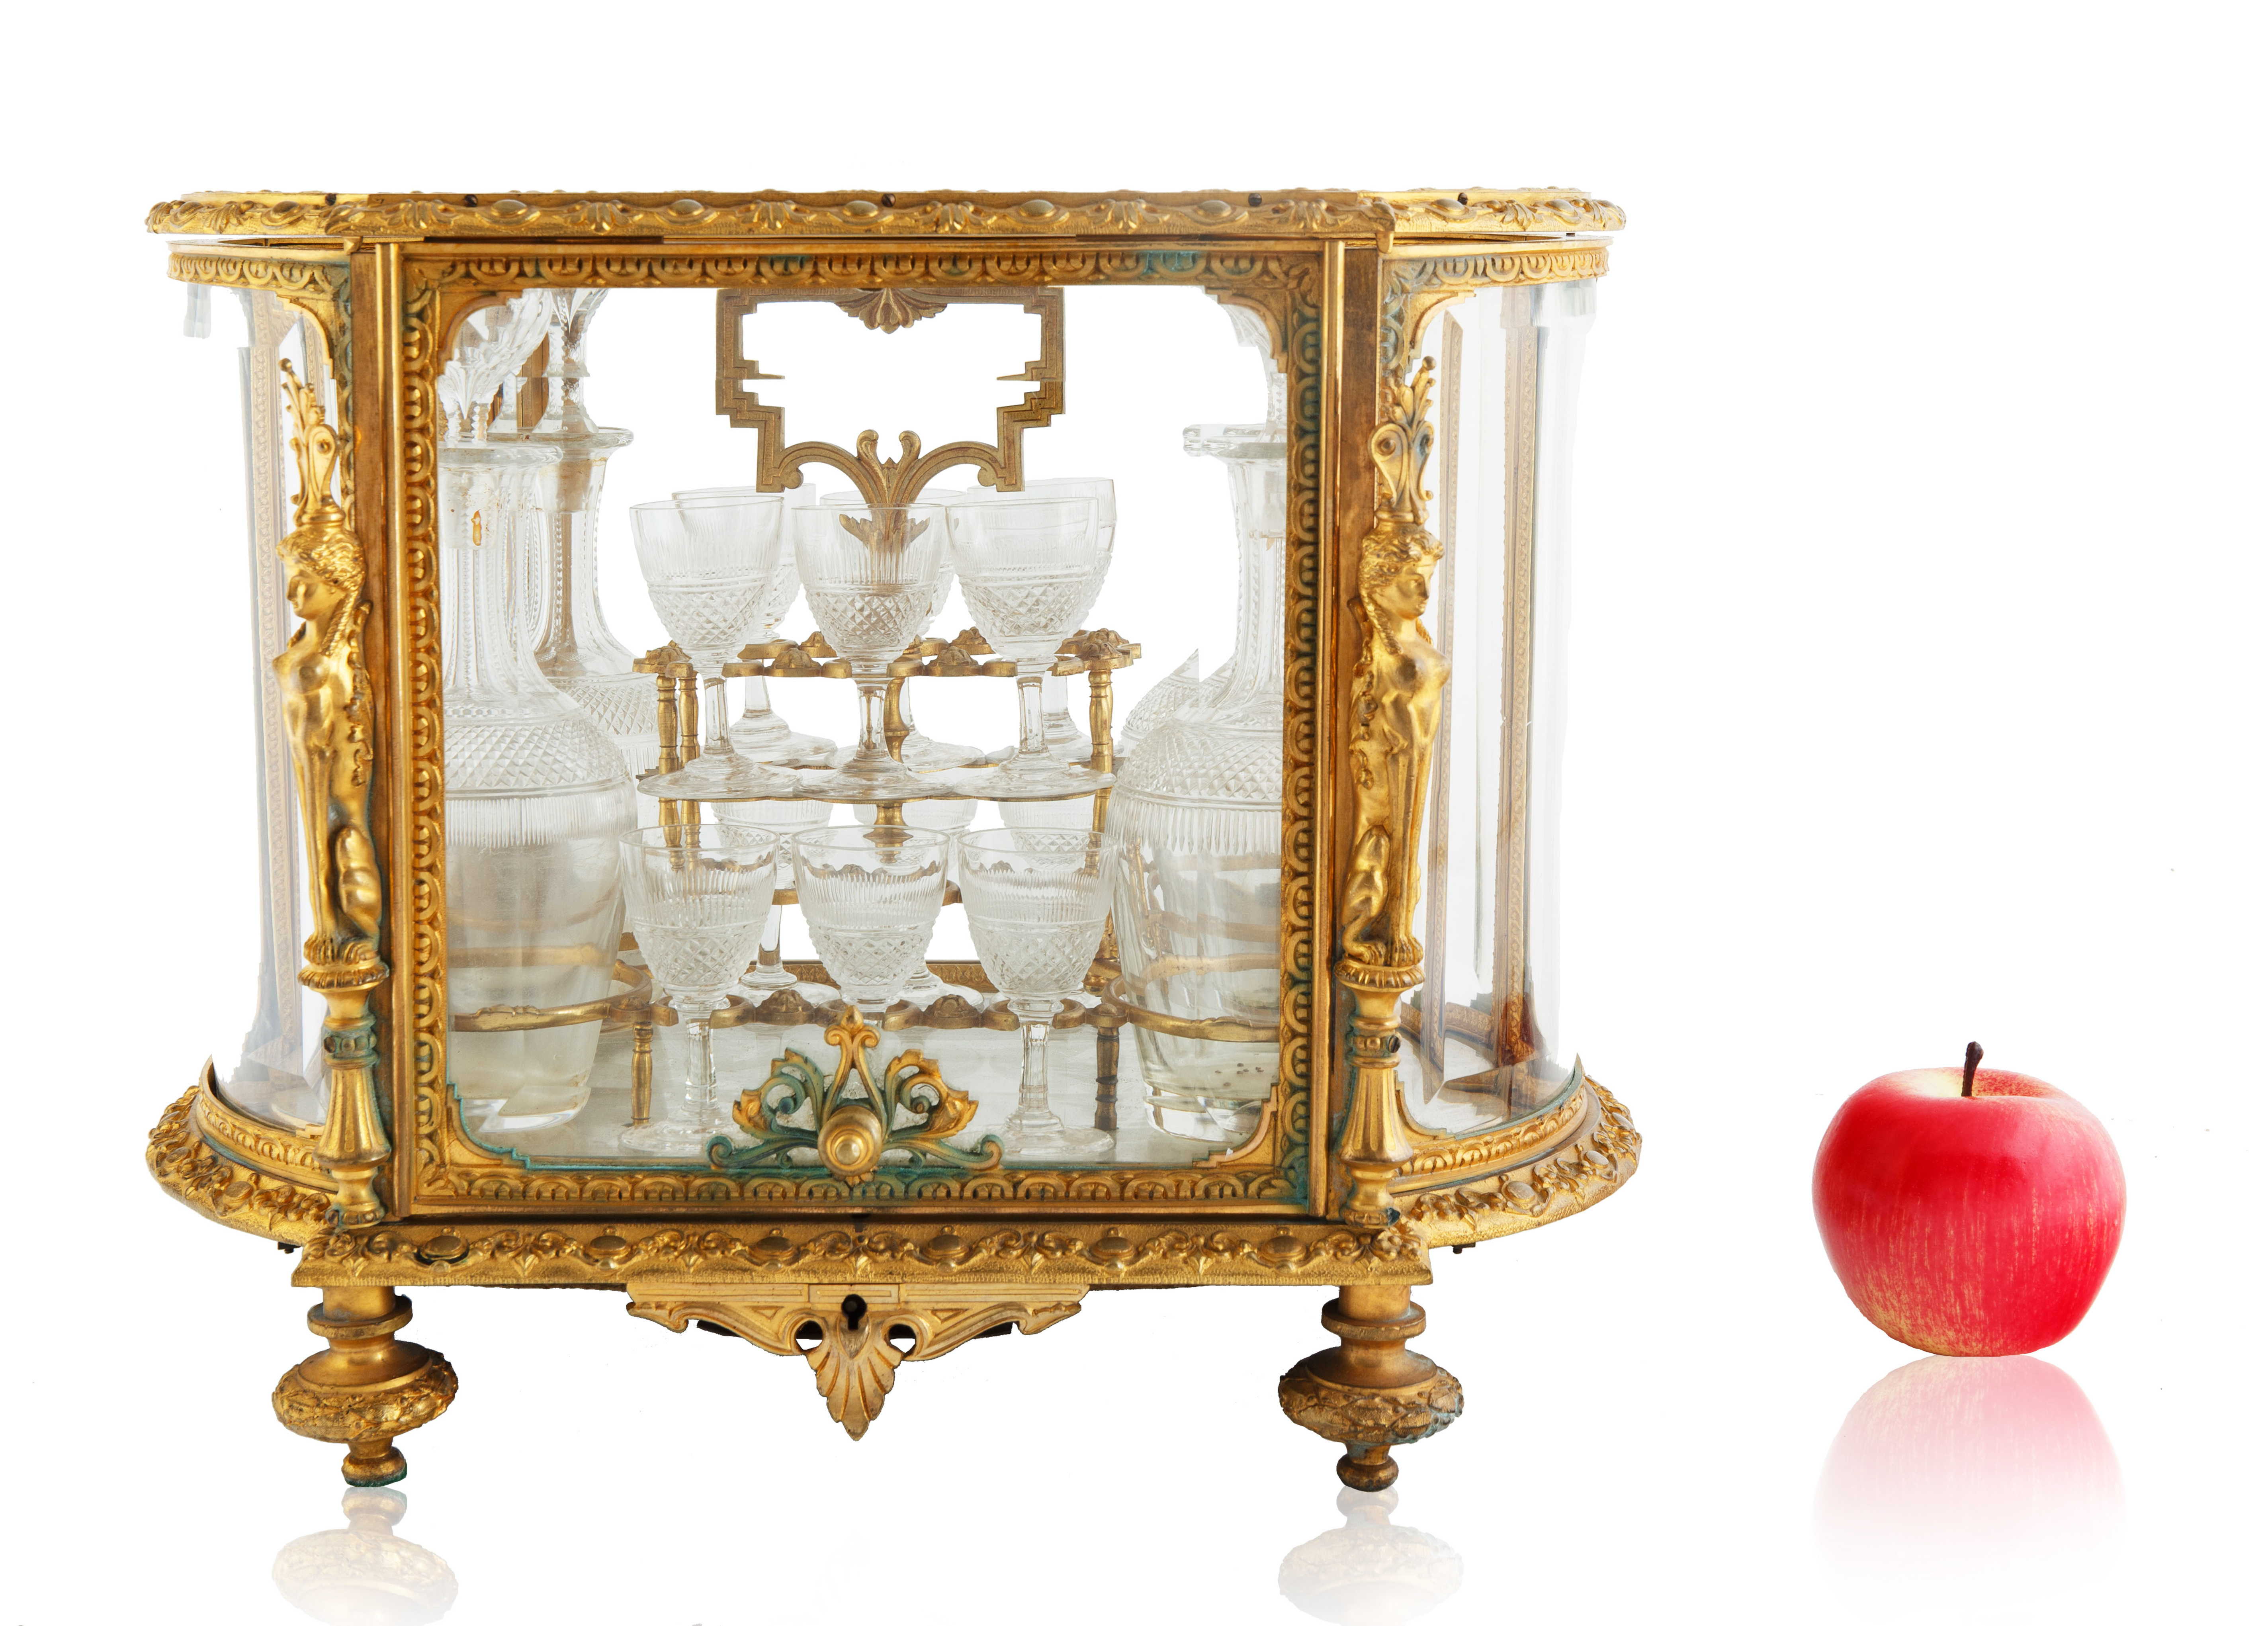 LATE 19TH-EARLY 20TH CENTURY FRENCH LOUIS XVI STYLE GILT BRONZE CAVE A LIQUEUR - Image 7 of 7